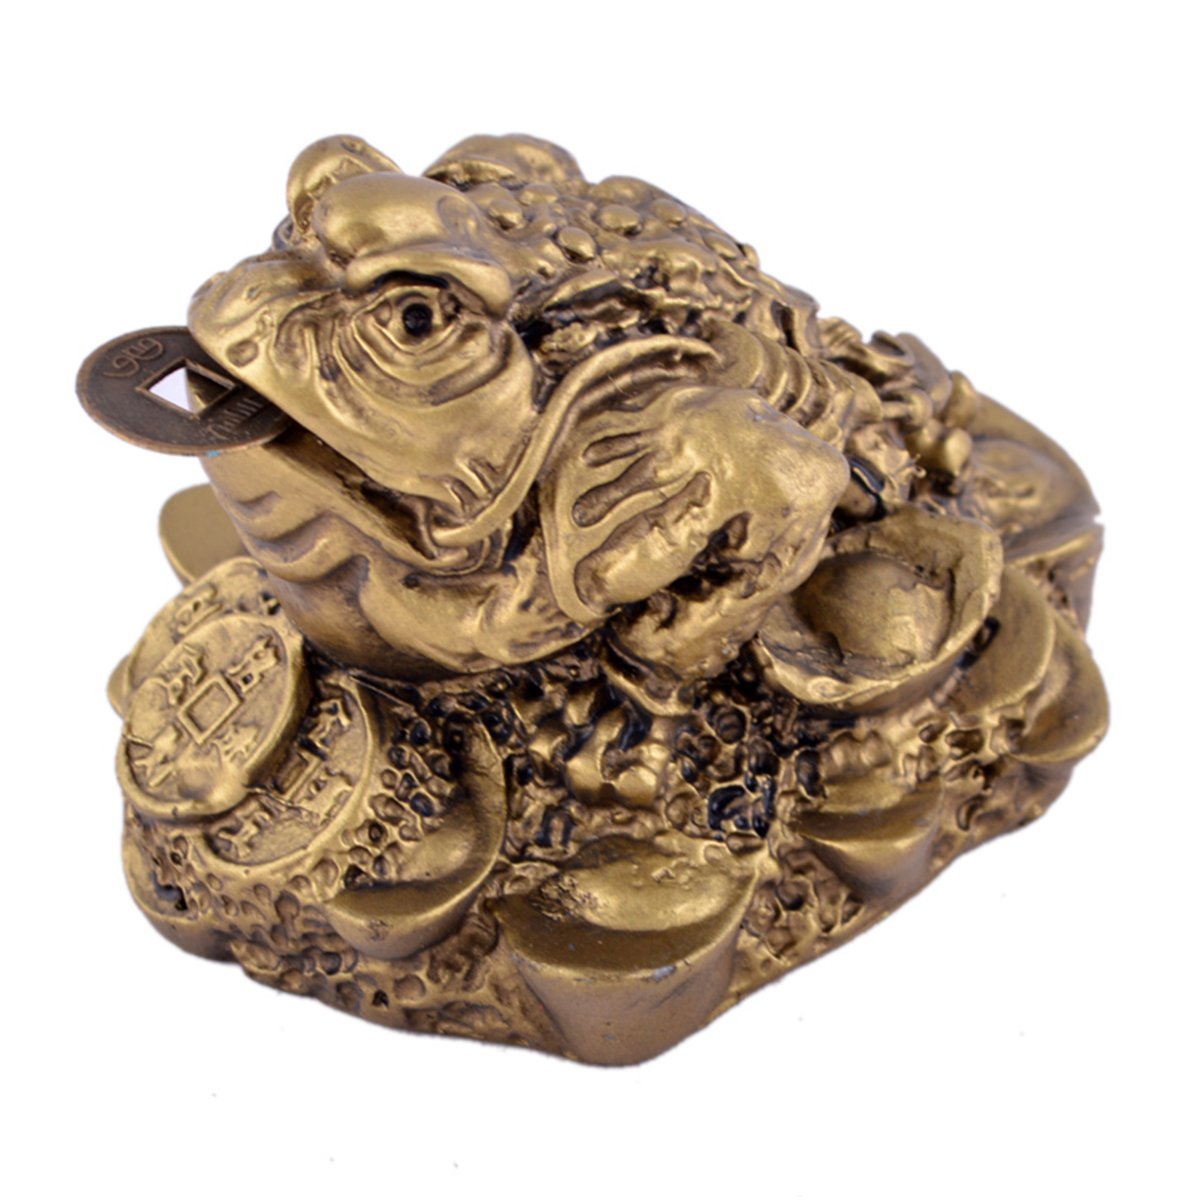 Feng Shui Money Frog Three Legged To Attract Wealth